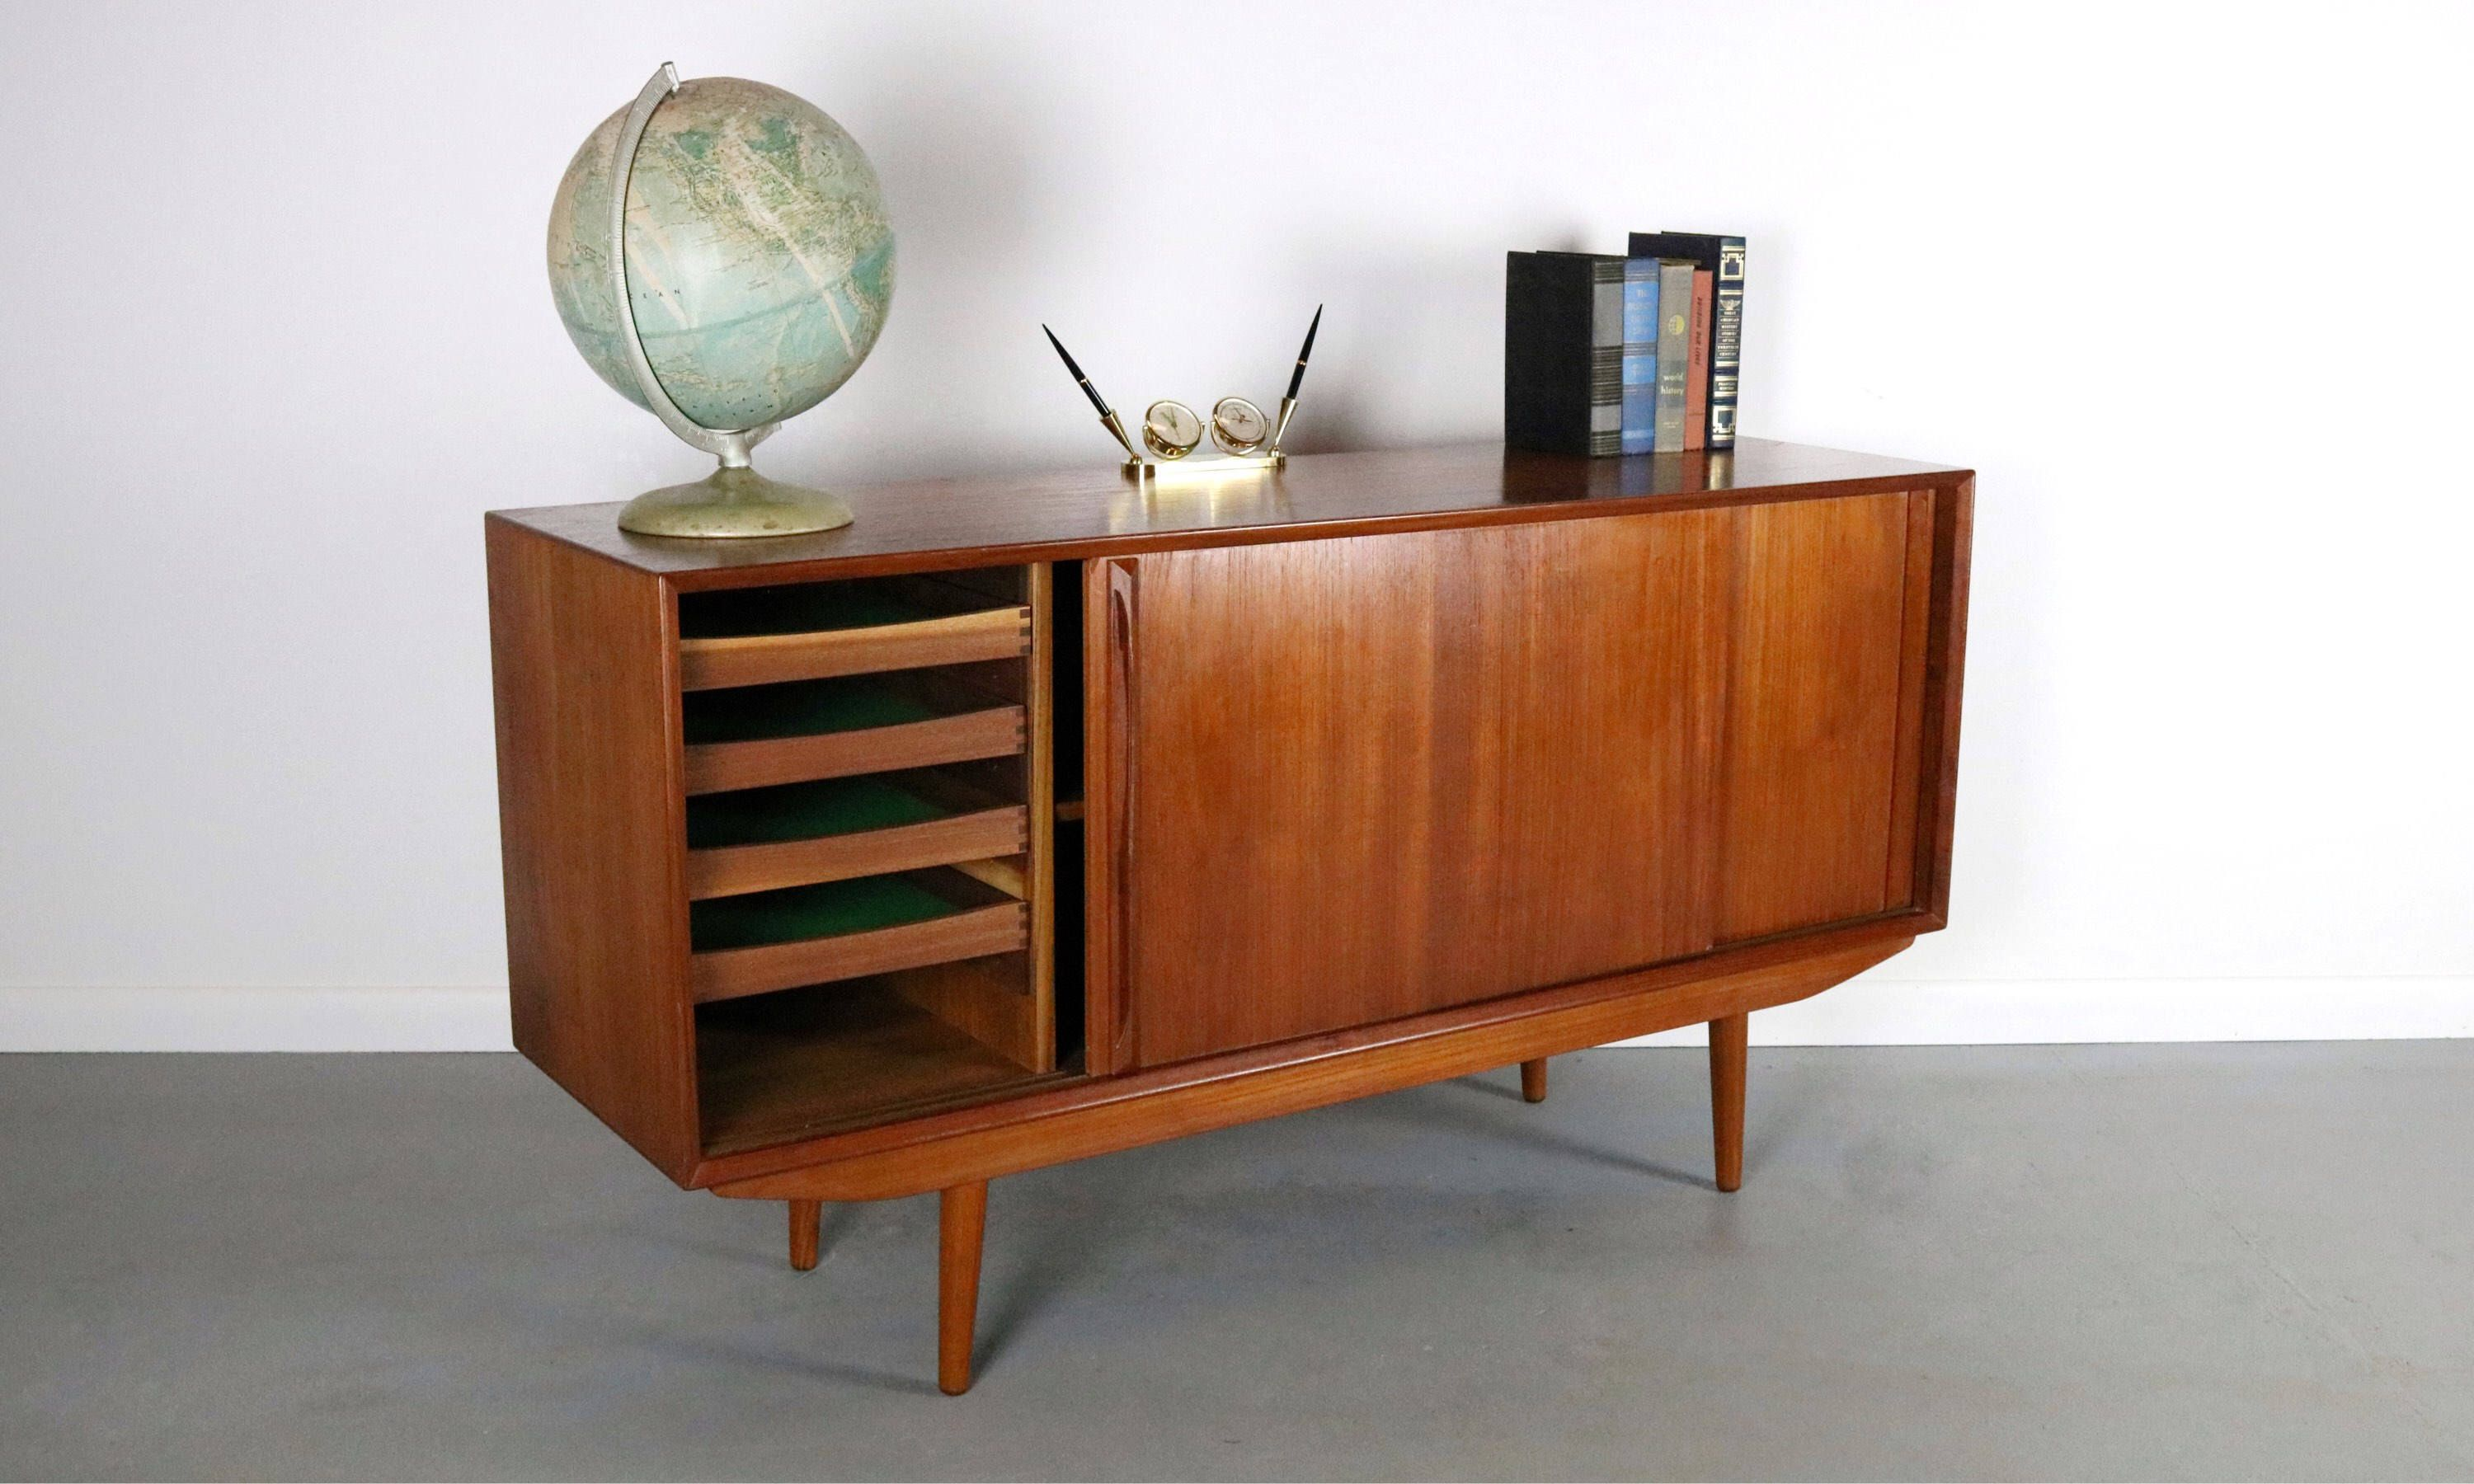 Danish Modern Buffet Credenza : Pin by sloane kelley on sideboards pinterest credenza modern